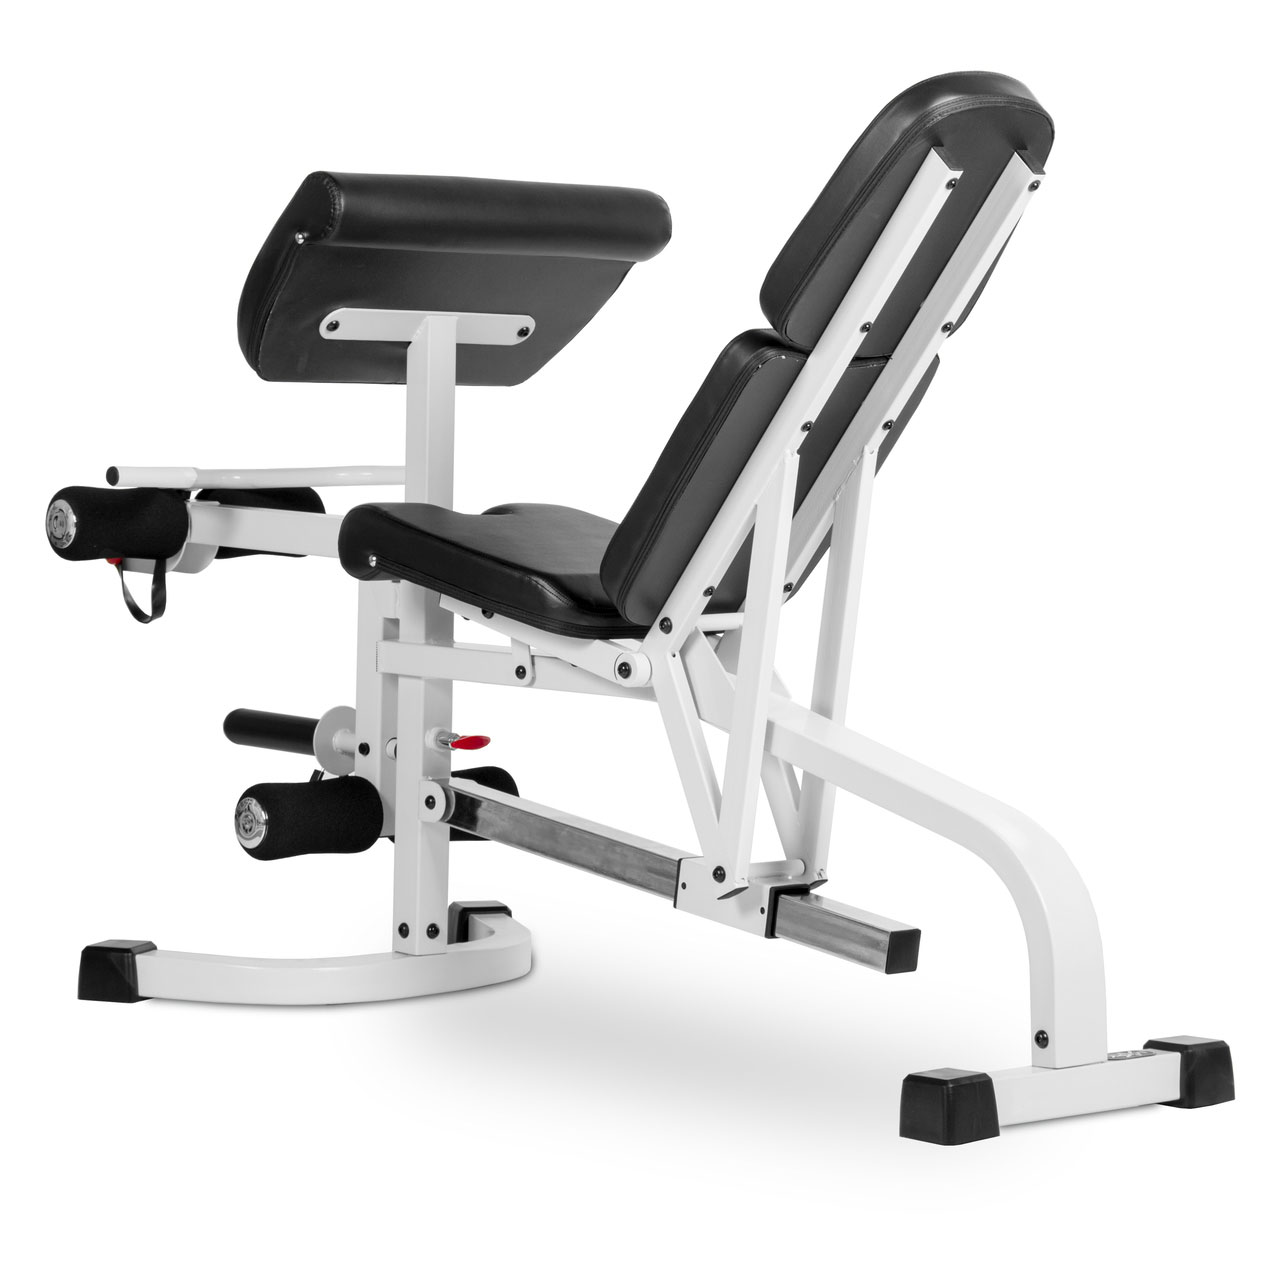 Xmark fitness flat incline decline weight bench with leg extension and preacher curl xm - Weight bench incline decline ...